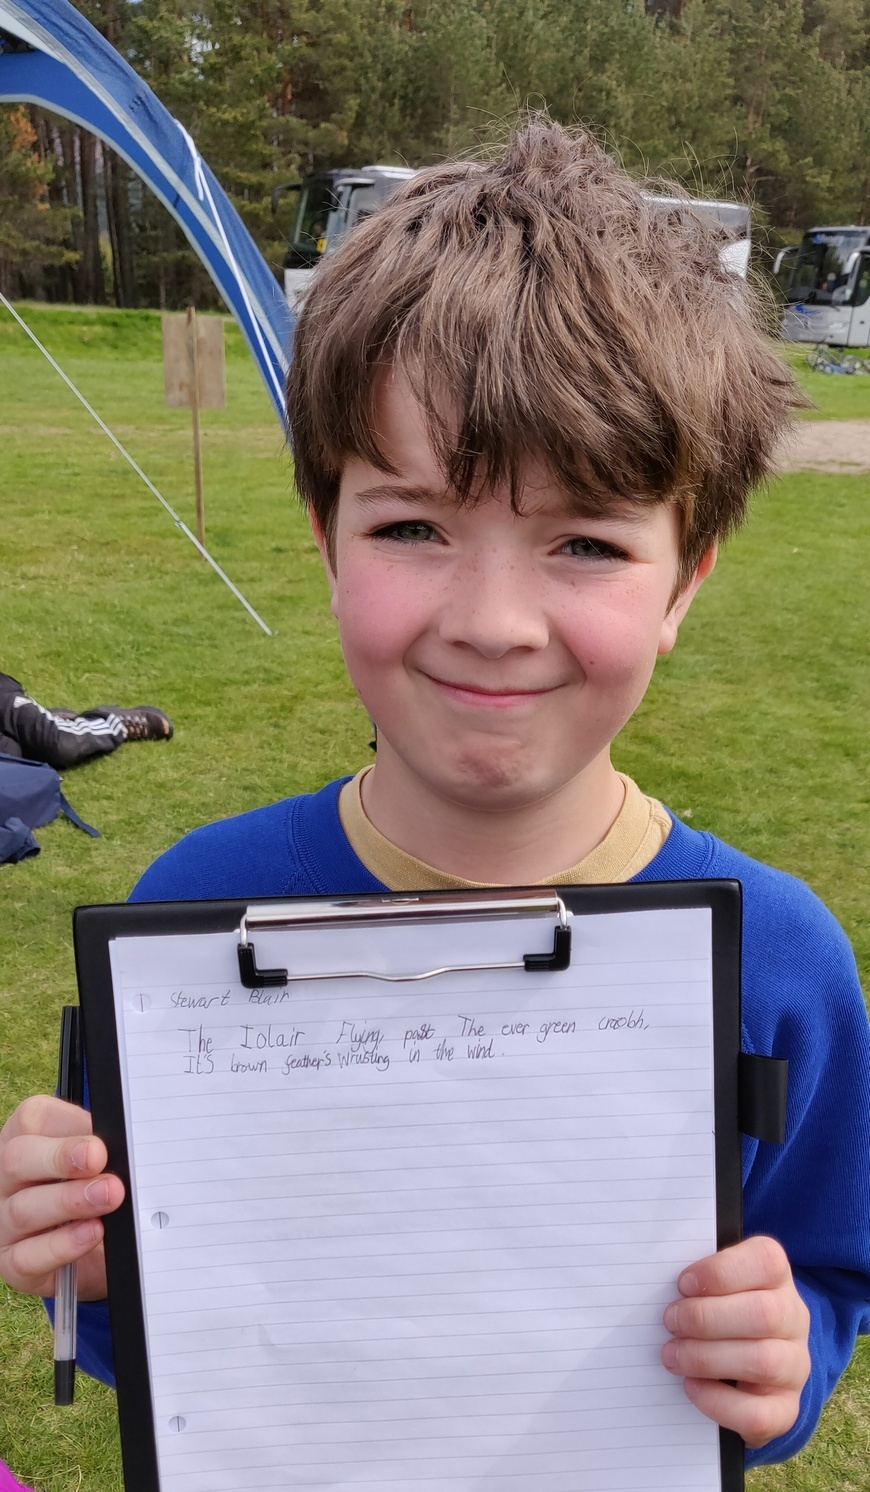 School boy shows his hand-written poem on a clipboard.